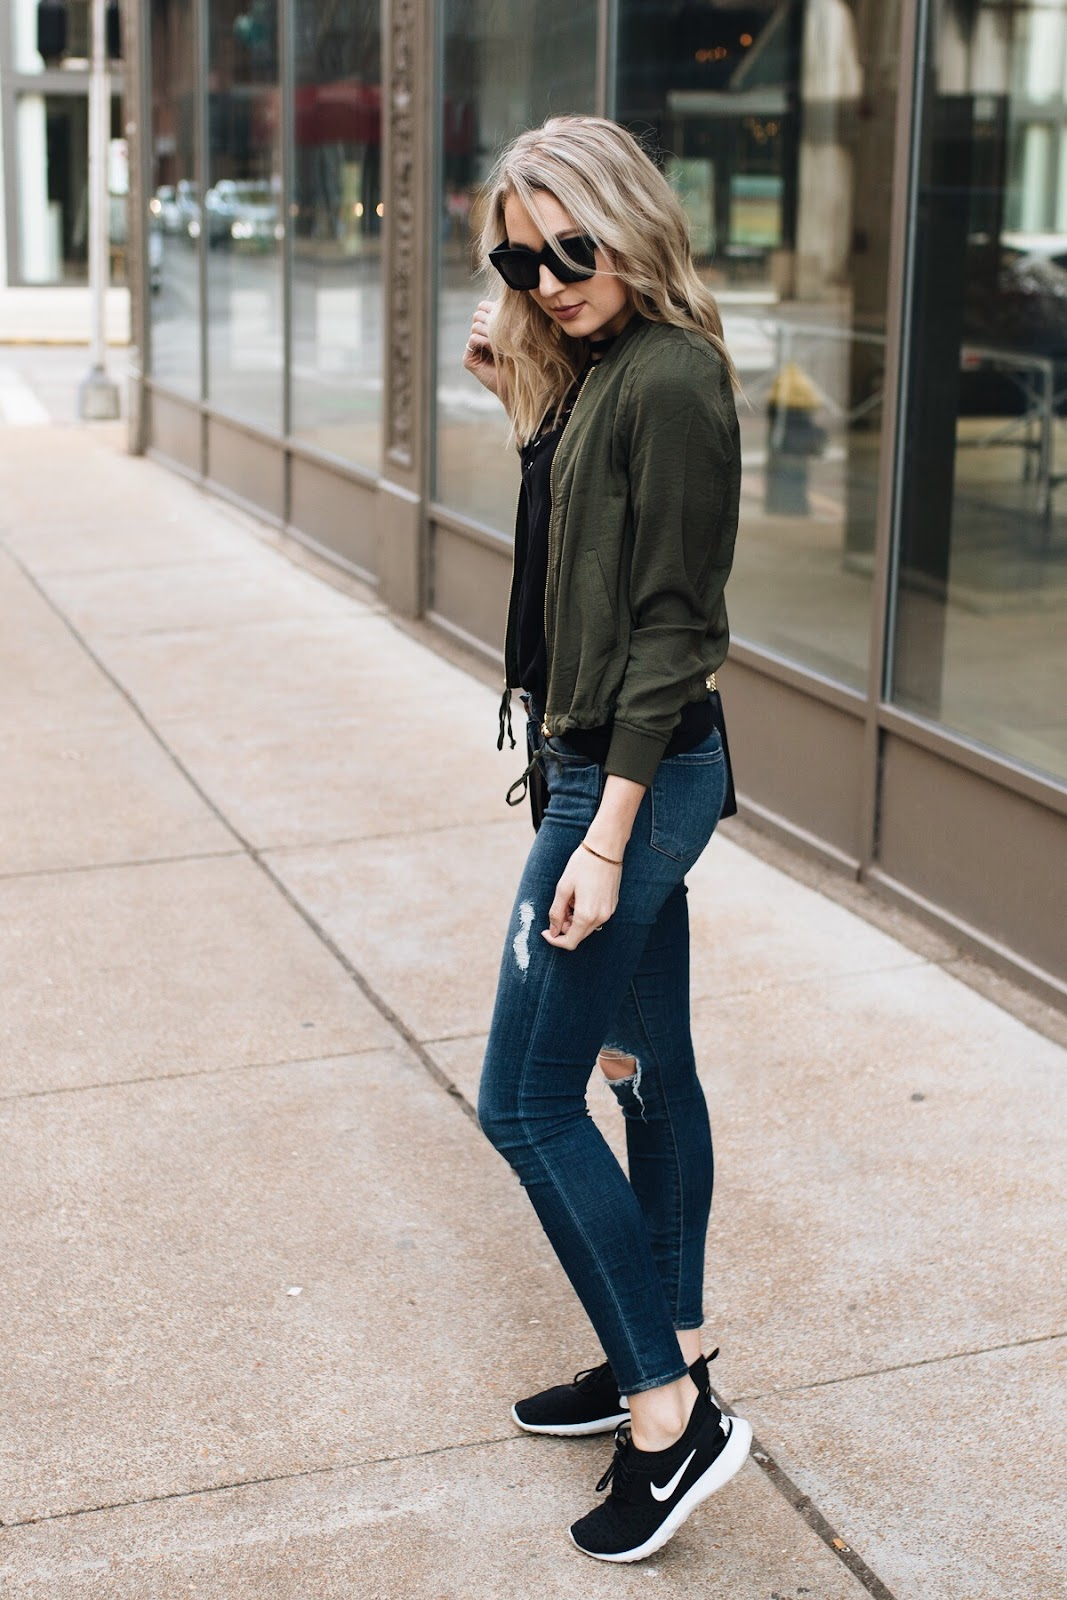 Casual weekend outfit with Nike sneakers